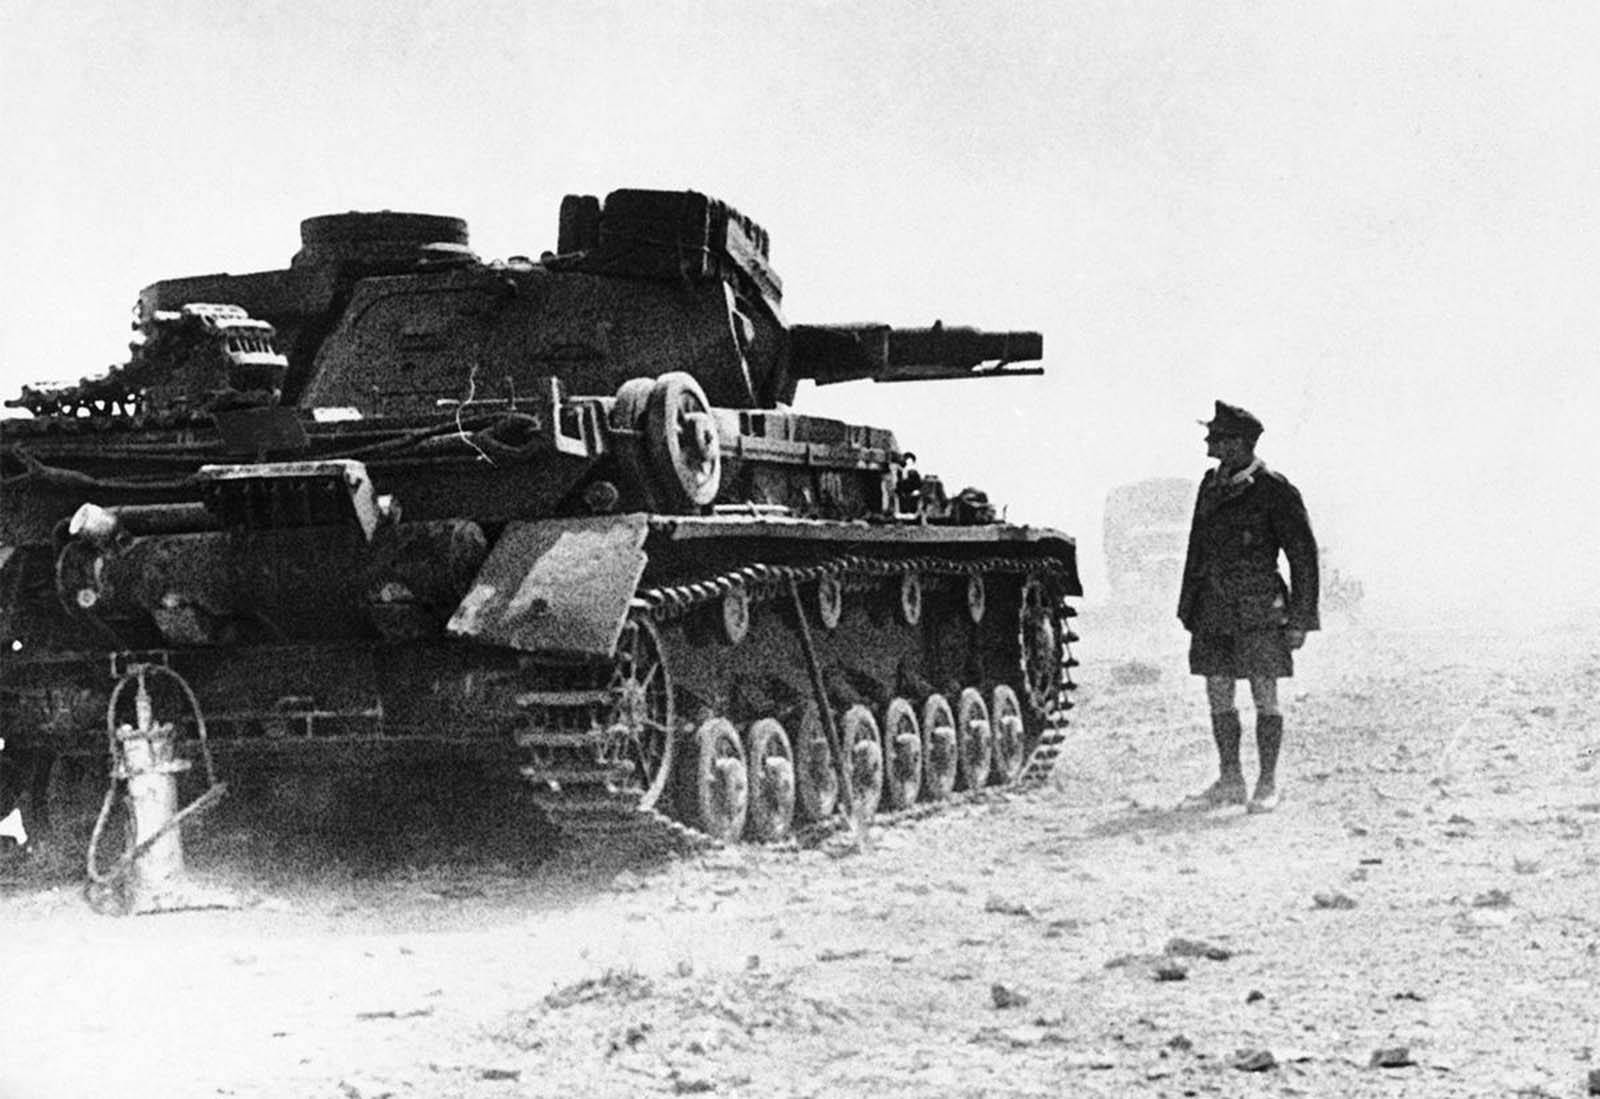 A huge Panzer IV German tank, part of the German expeditionary force in North Africa, halts in the Libyan Desert on April 14, 1941.